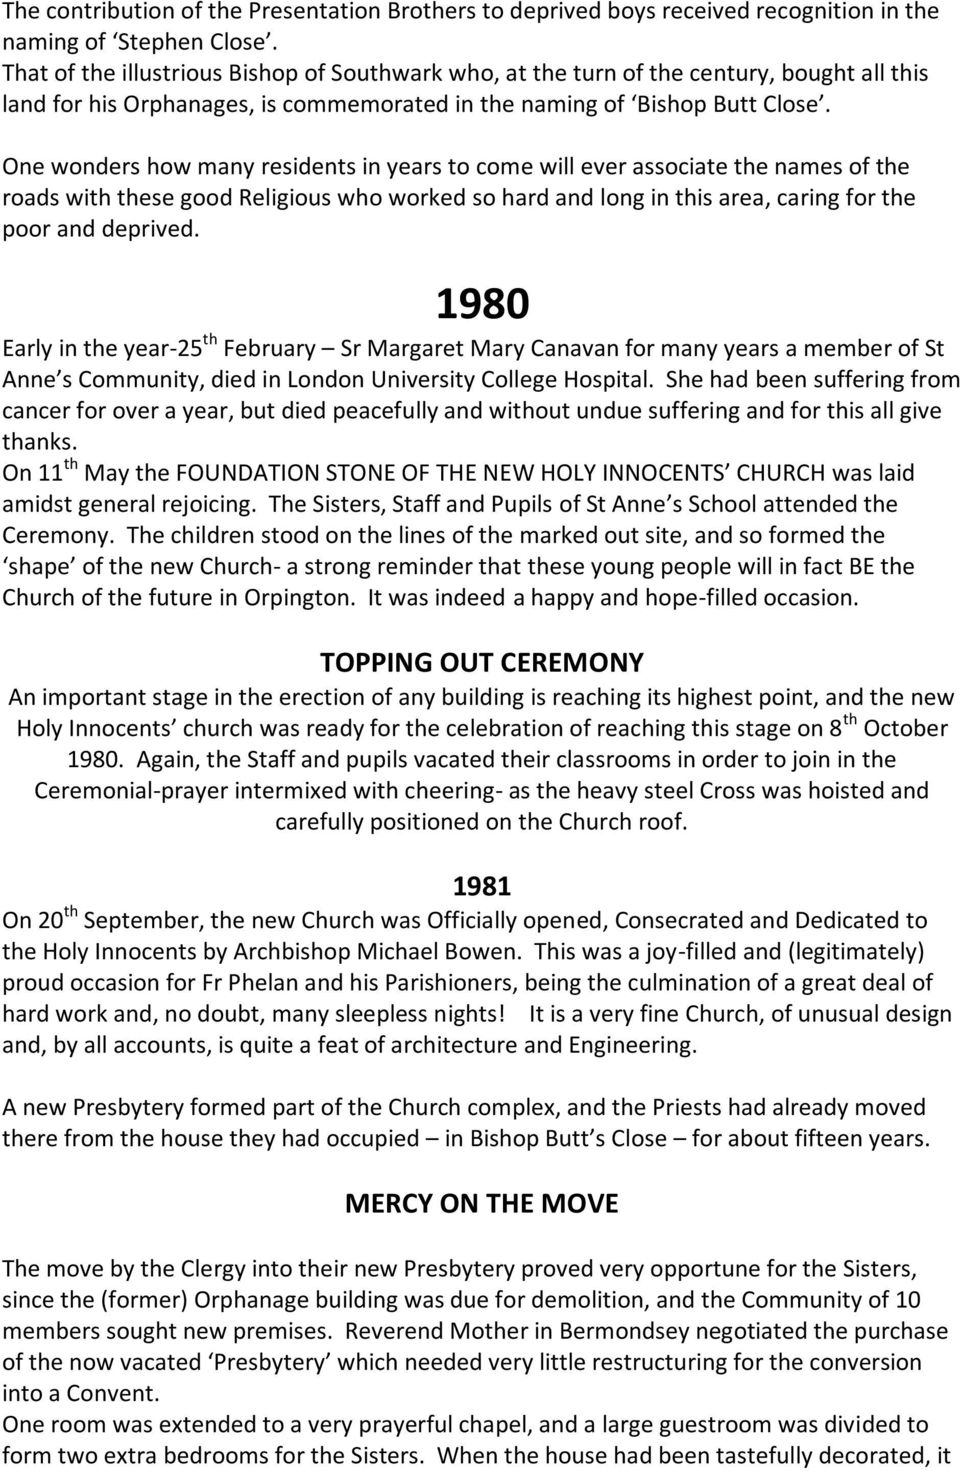 An Outline of the History of St Anne's Convent, Orpington - PDF